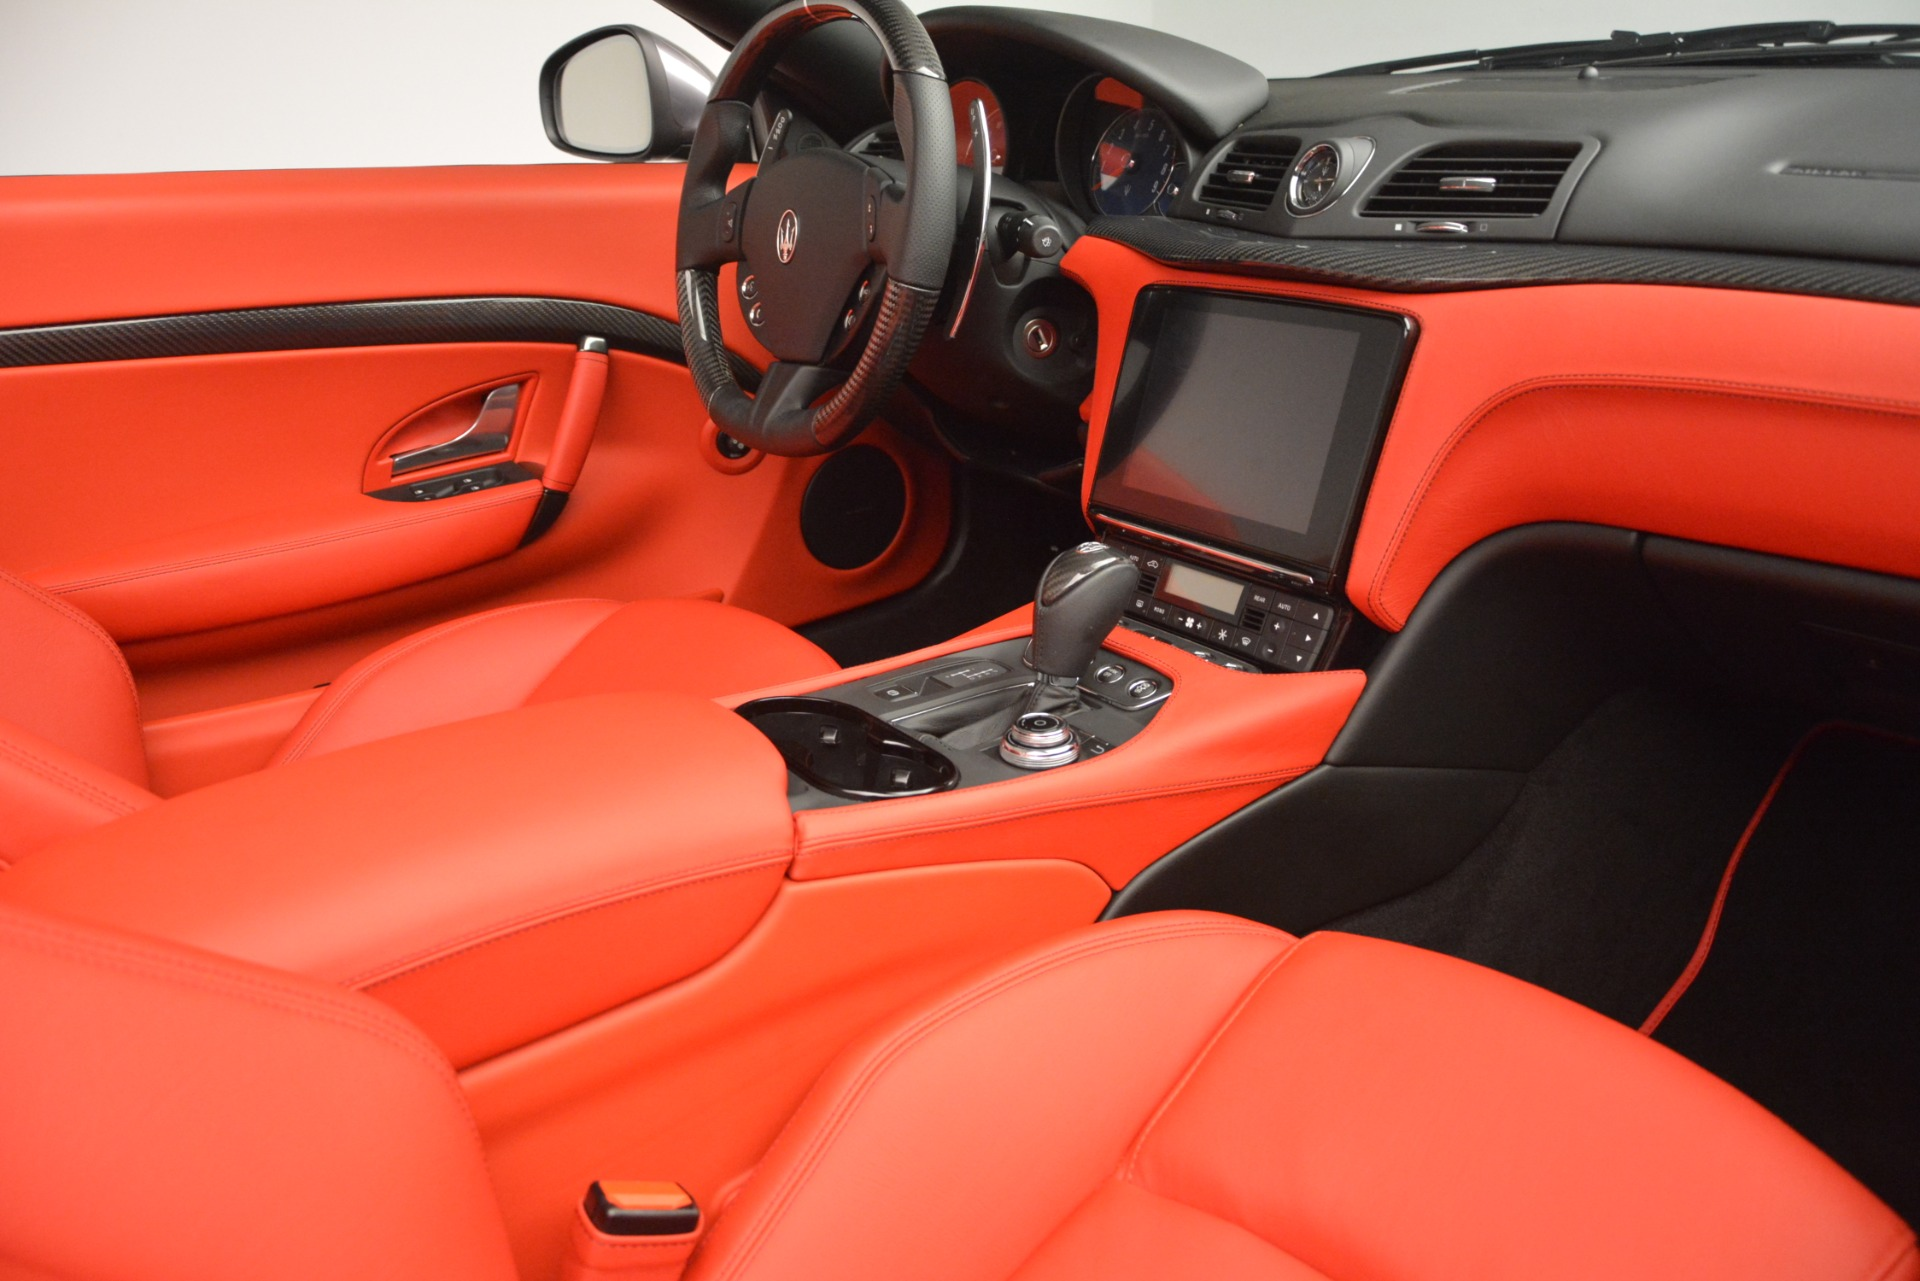 Used 2018 Maserati GranTurismo Sport For Sale In Westport, CT 2637_p28